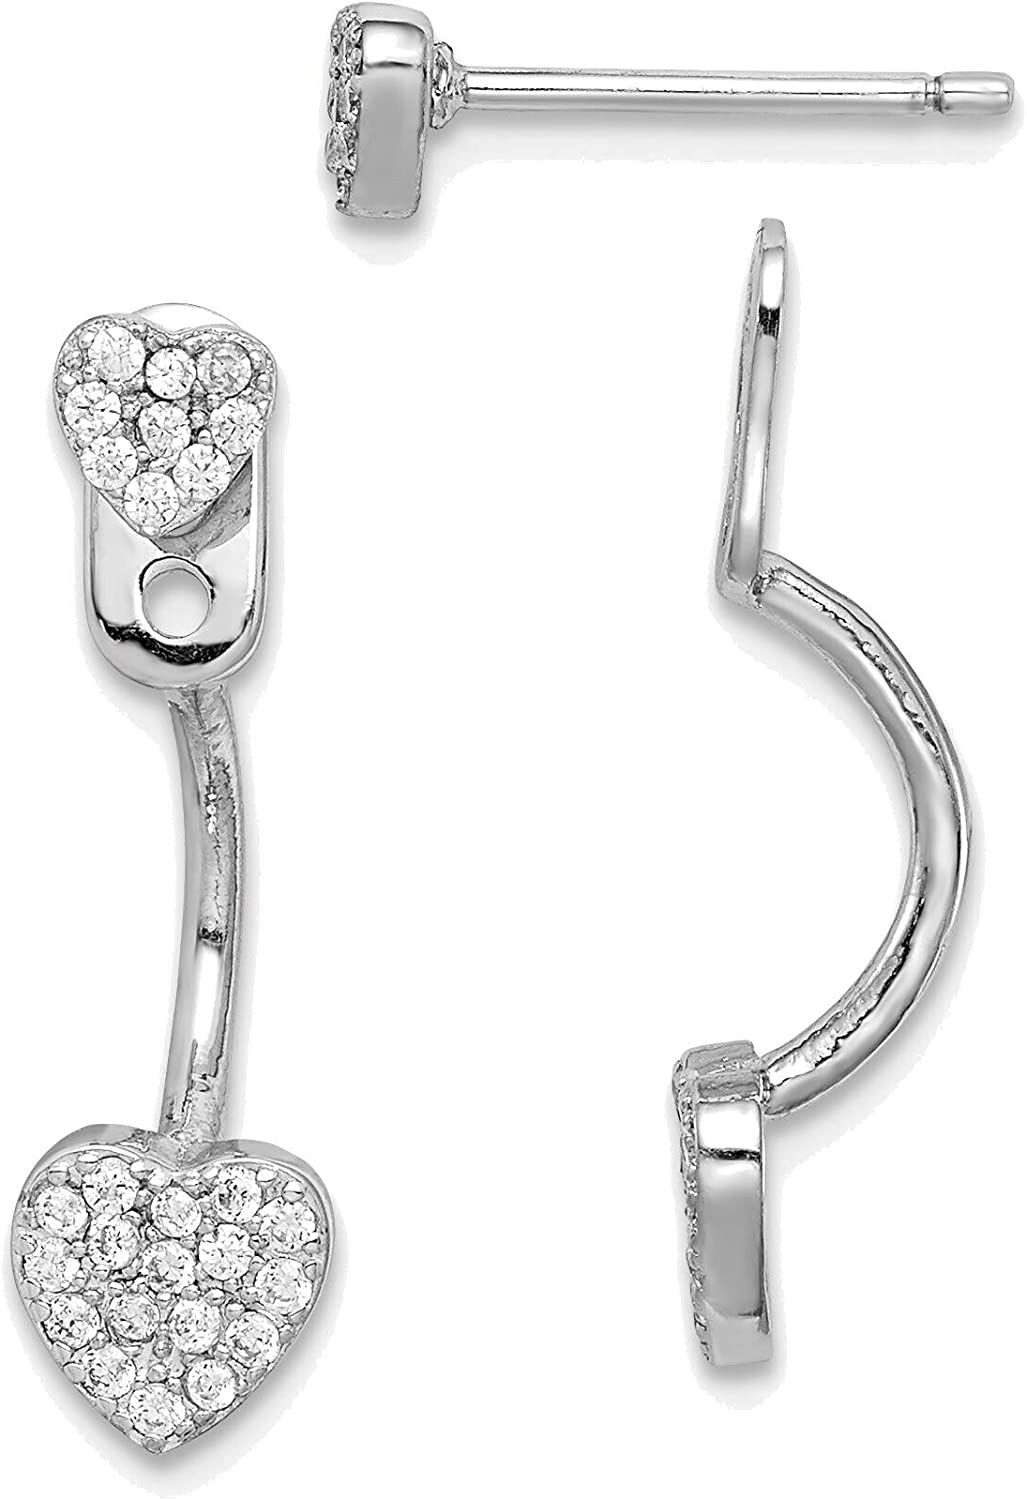 Solid Sterling Silver Rhodium-plated Jackets Heart with CZ 4 years warranty Superlatite